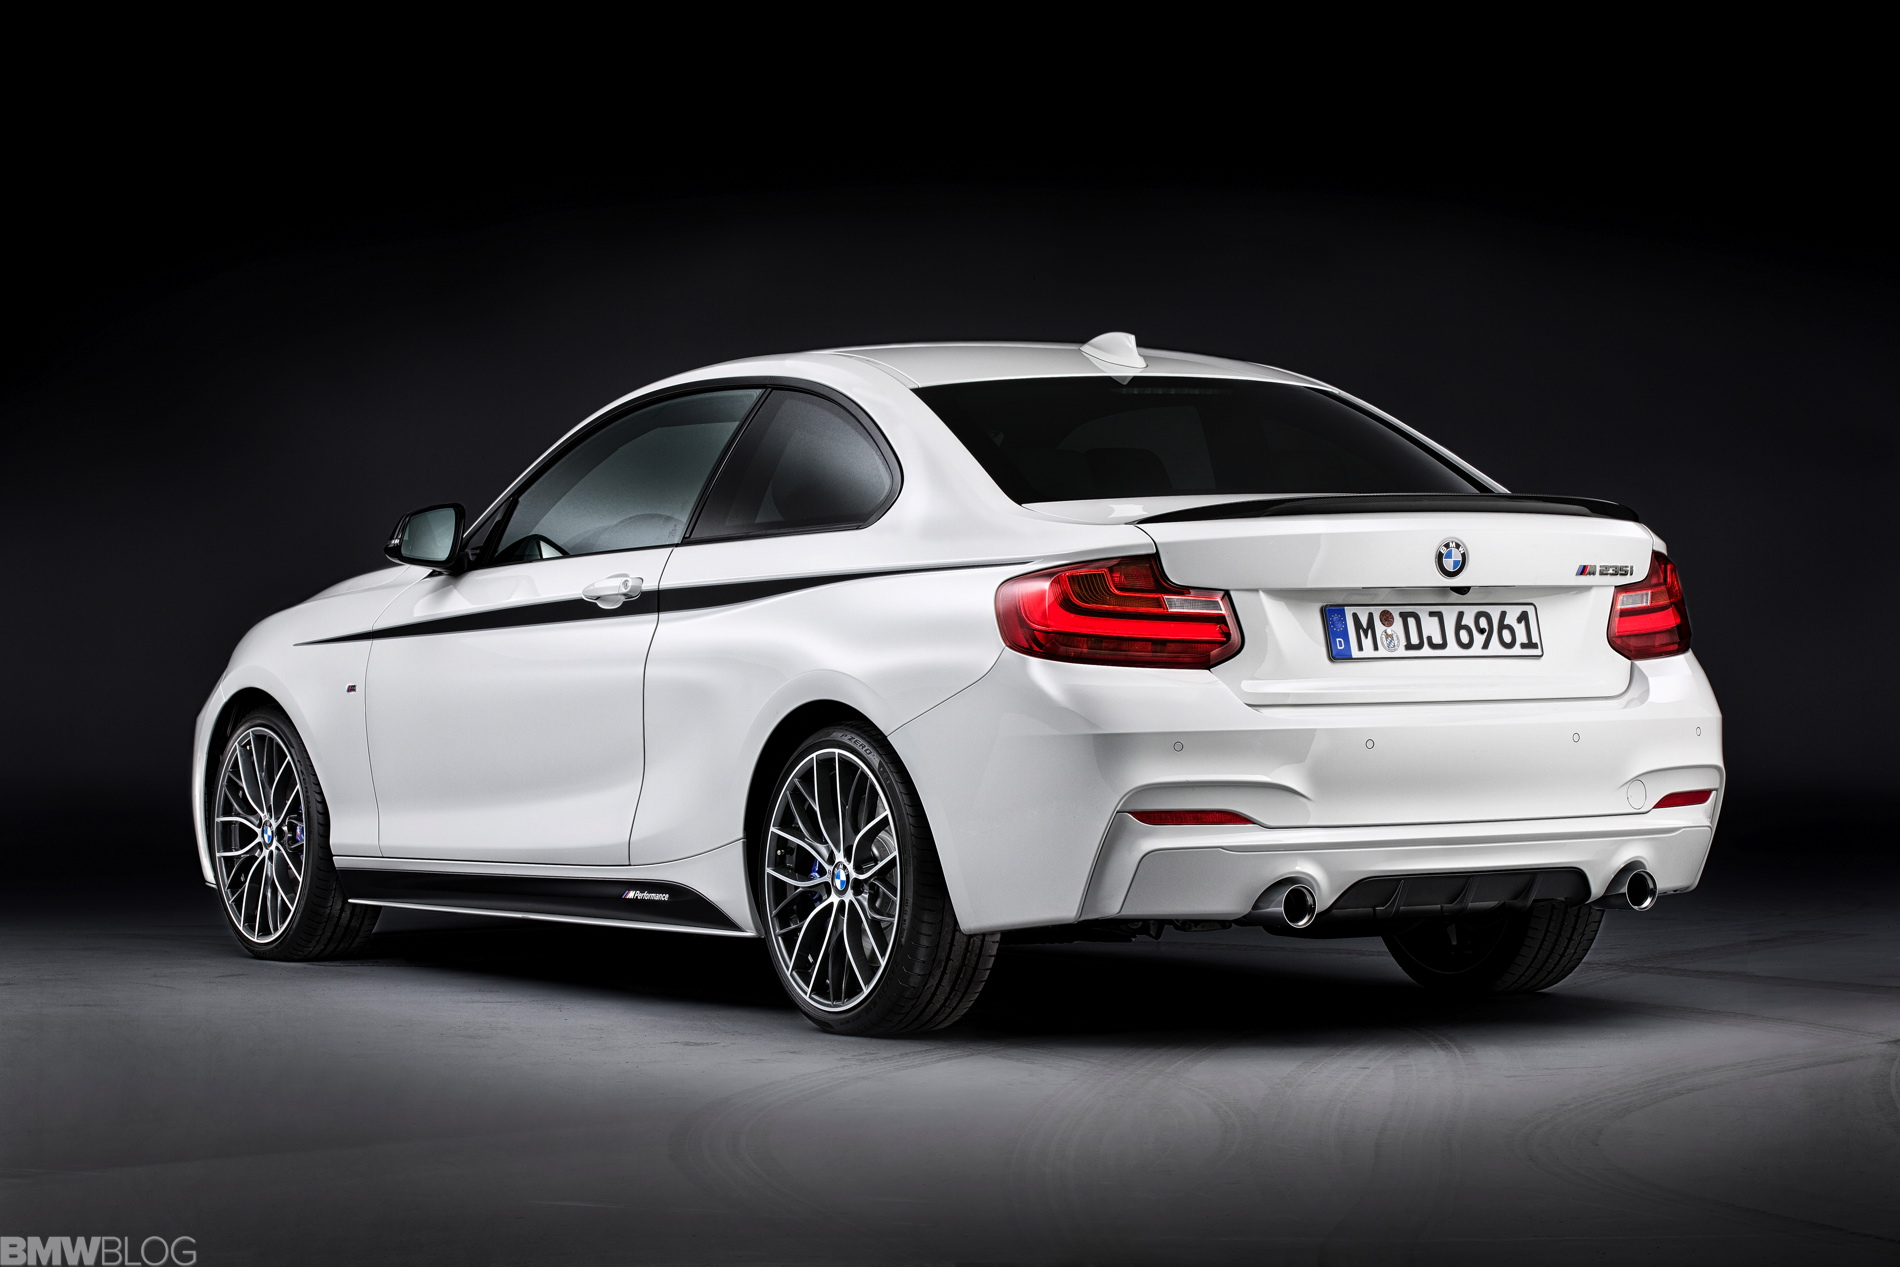 bmw 2 series images #1